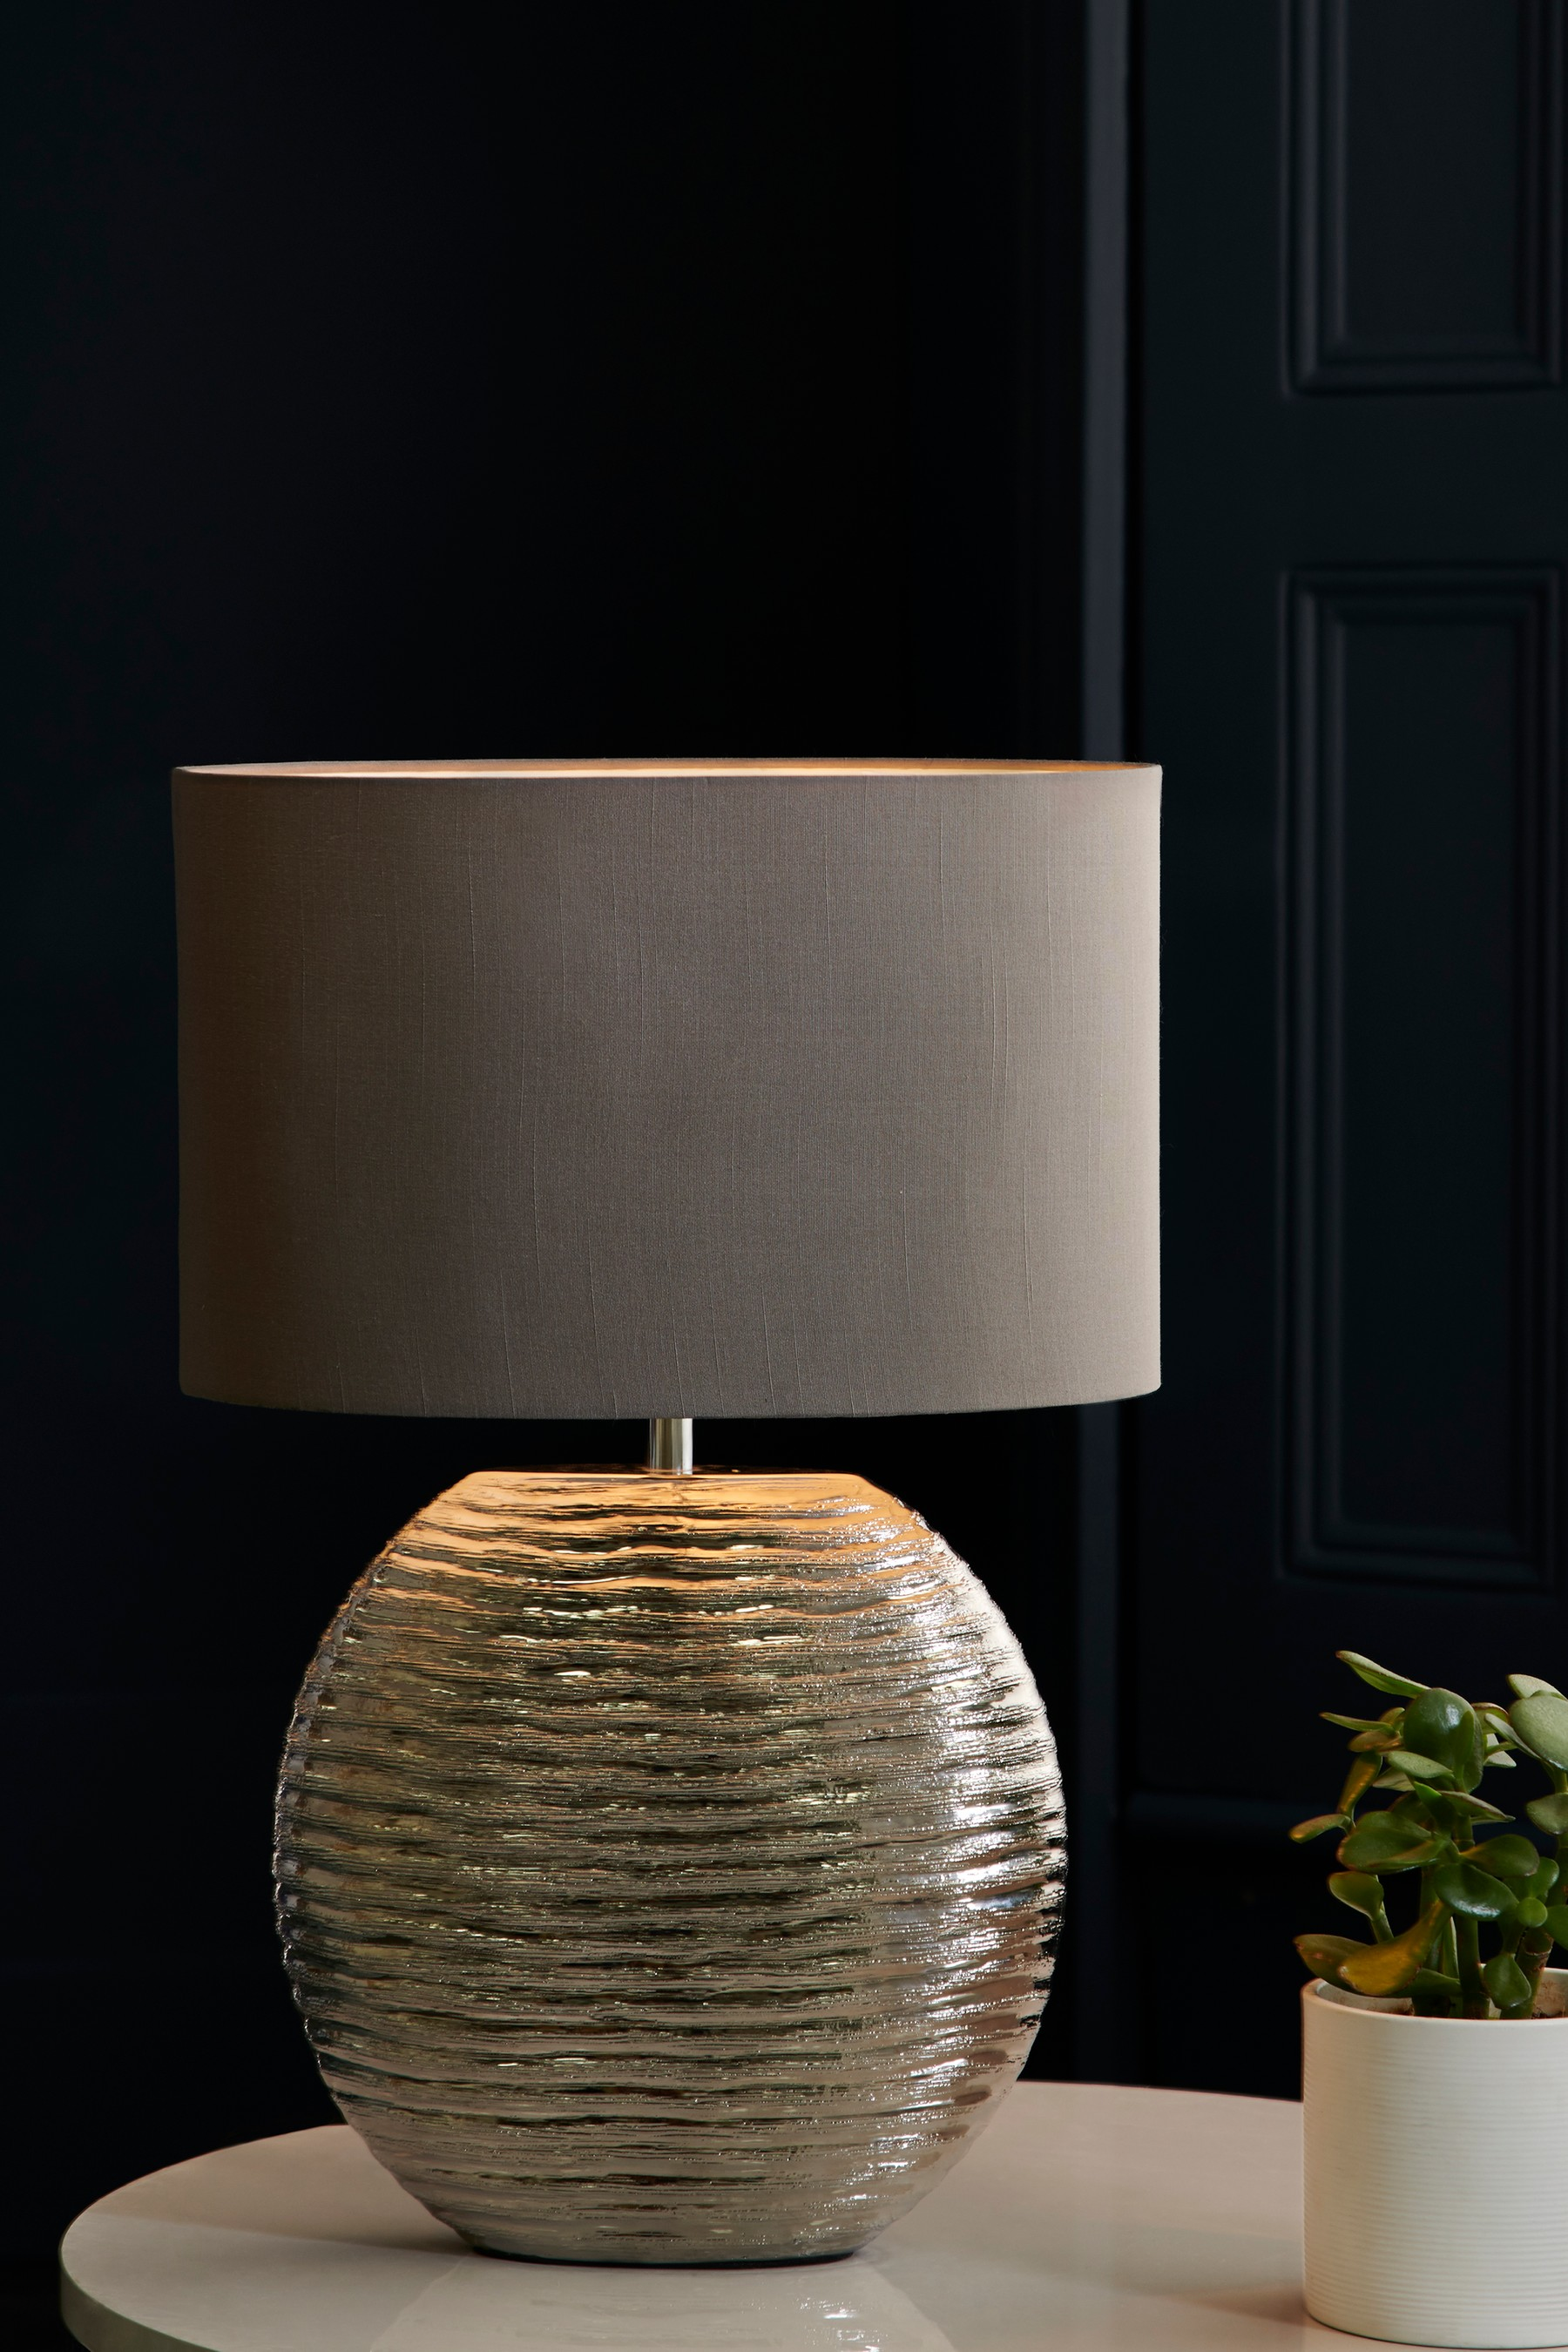 Next Shimmer Large Touch Lamp Chrome Touch Lamp Touch Lamps